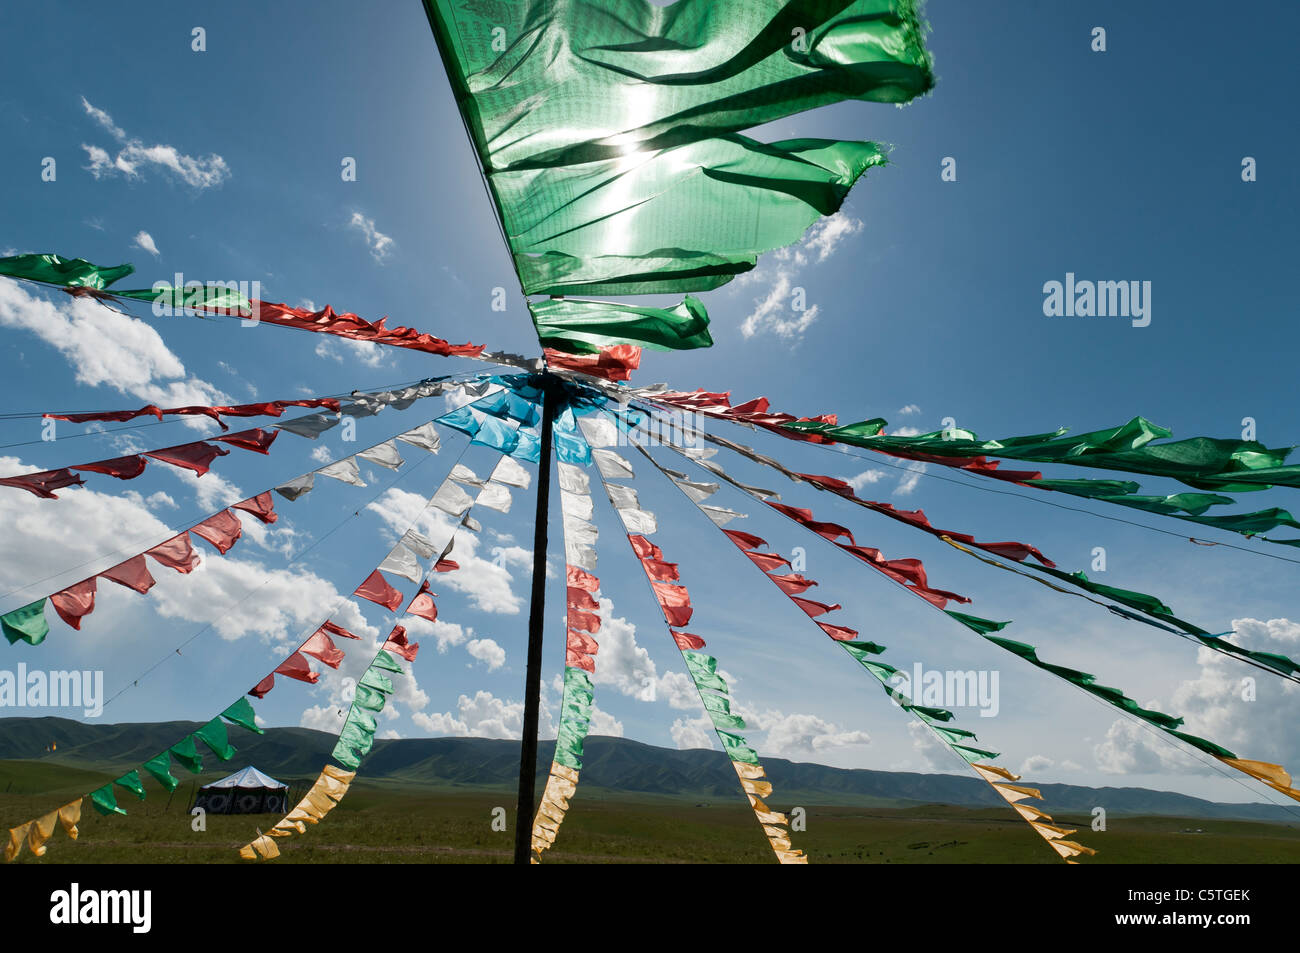 Tibetan Buddhist prayer flags flutter at folk festival, Haibei, Qinghai Province, China Stock Photo